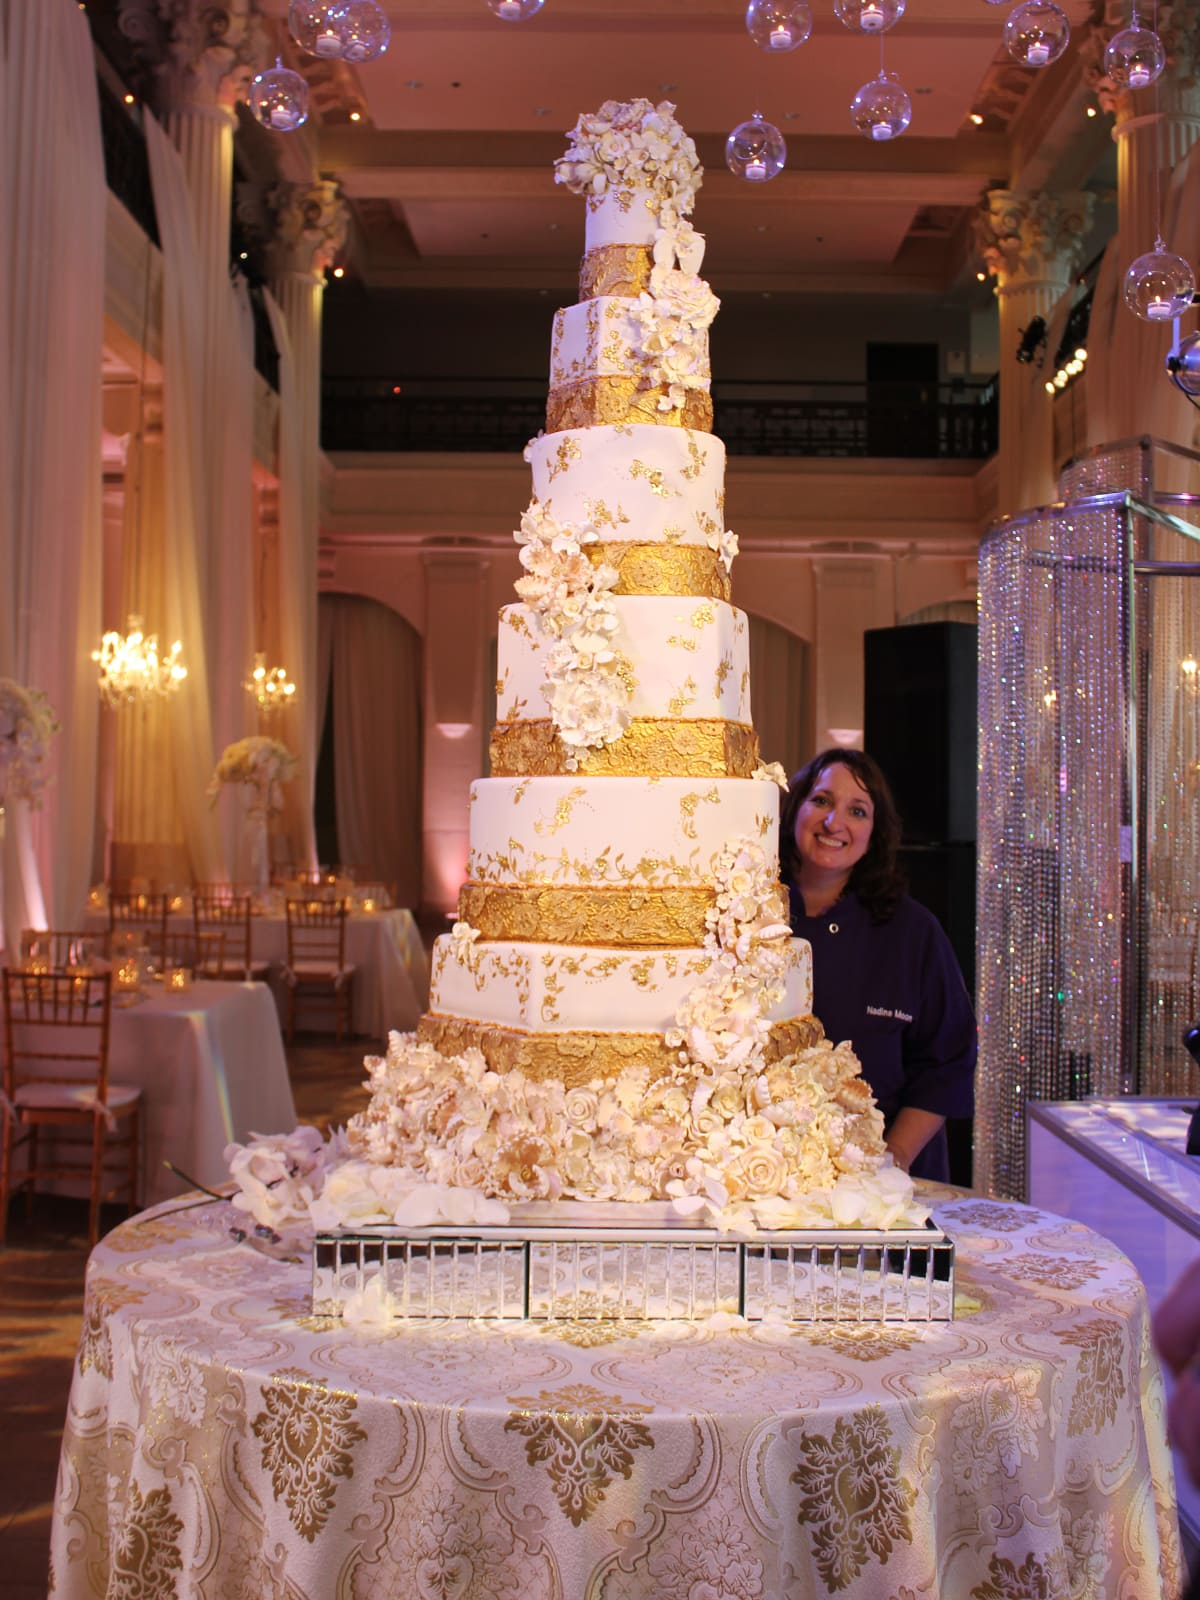 News, Shelby, Who Made the Cake?, Food Network,  June 2015